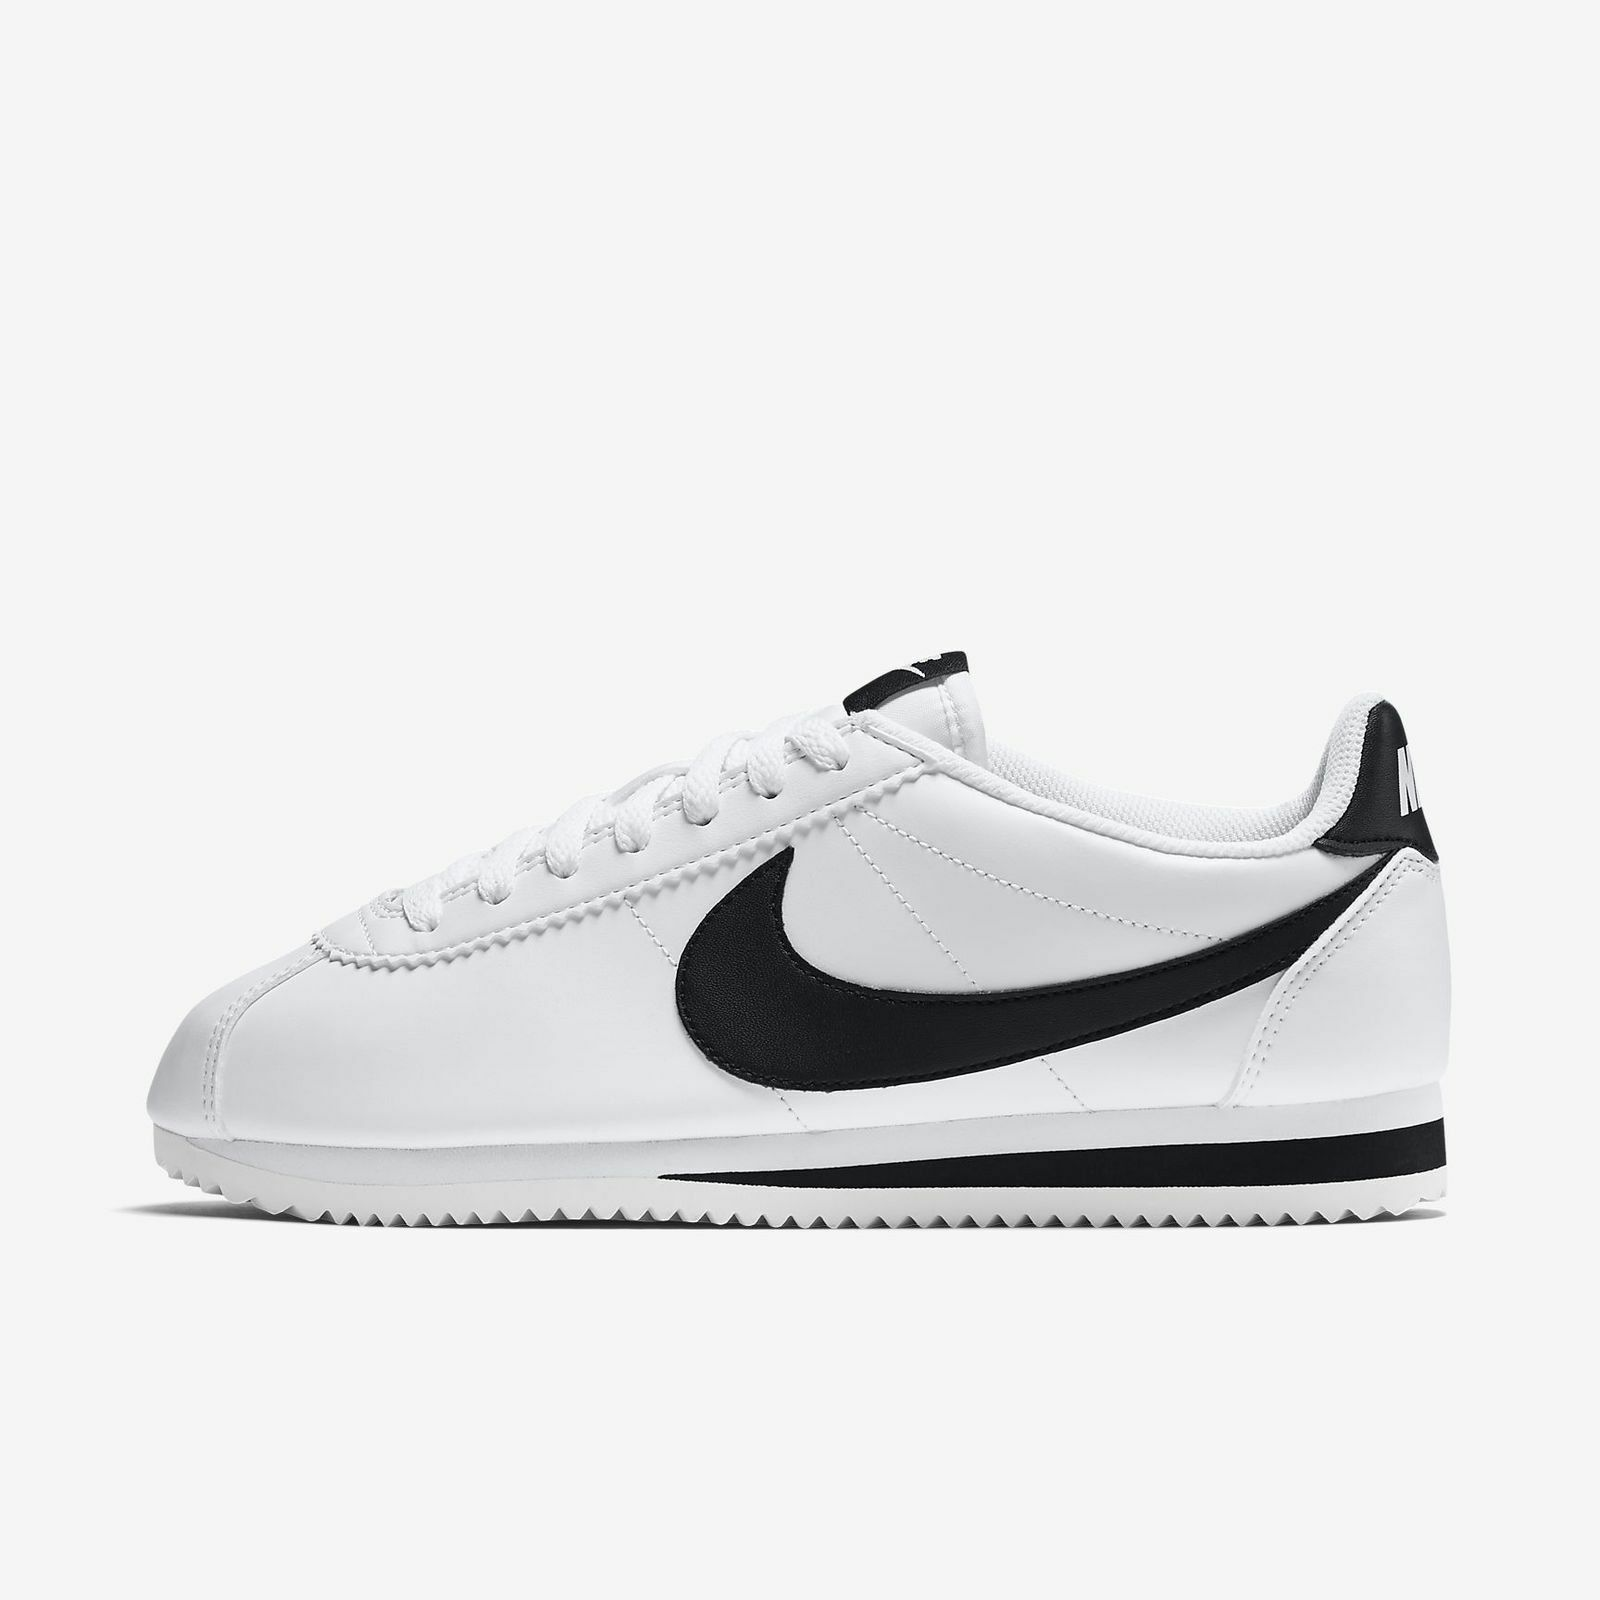 New Nike Women's Classic Cortez Leather Shoes (807471-101) White//Black